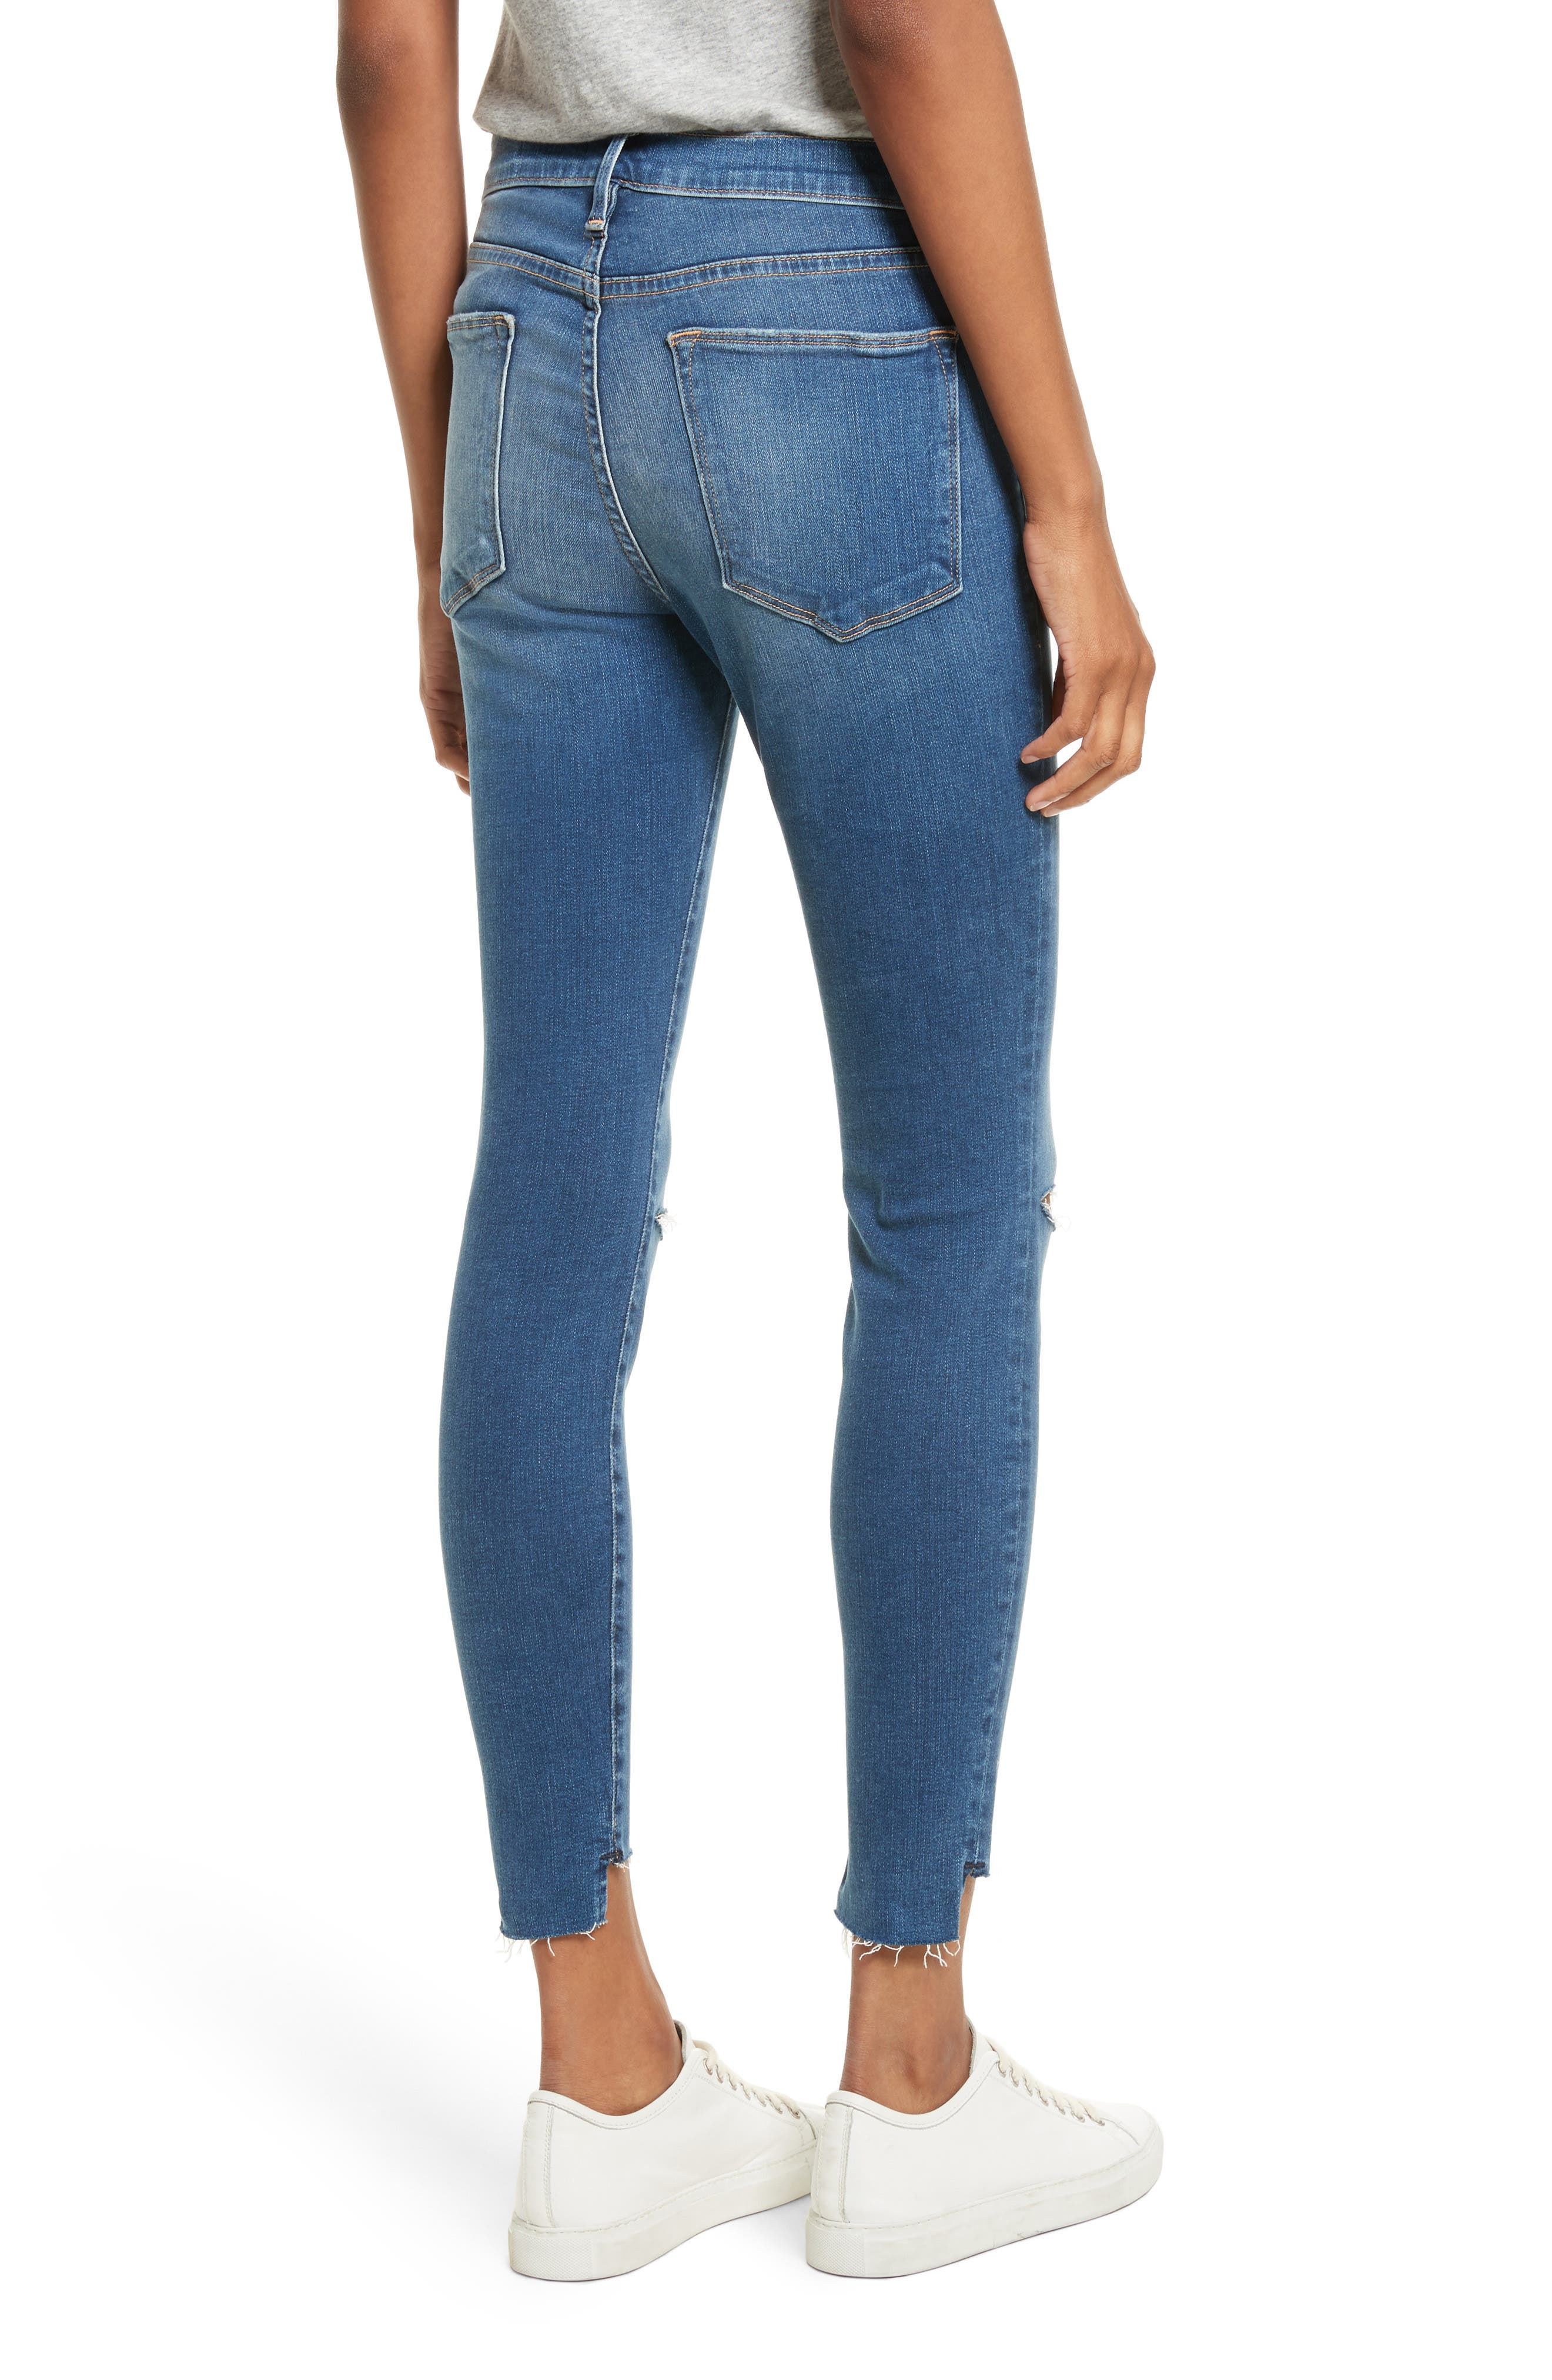 Alternate Image 2  - FRAME Le High High Waist Ankle Skinny Jeans